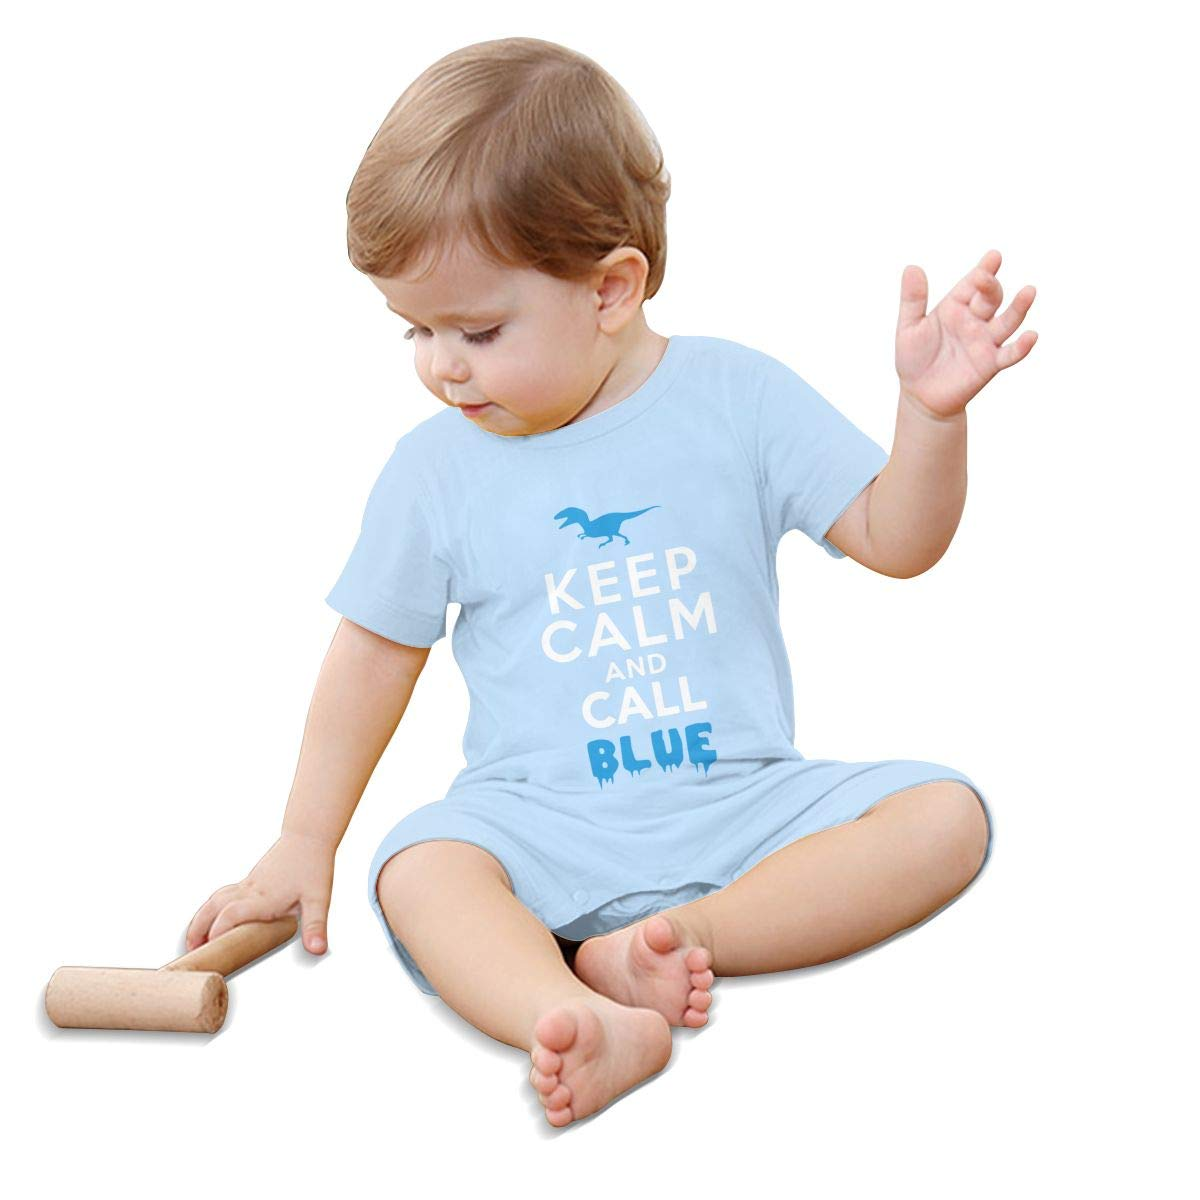 YINGFG Baby Boys Girls Short Sleeve Jumpsuit Keep Calm and Call Blue Cotton Romper